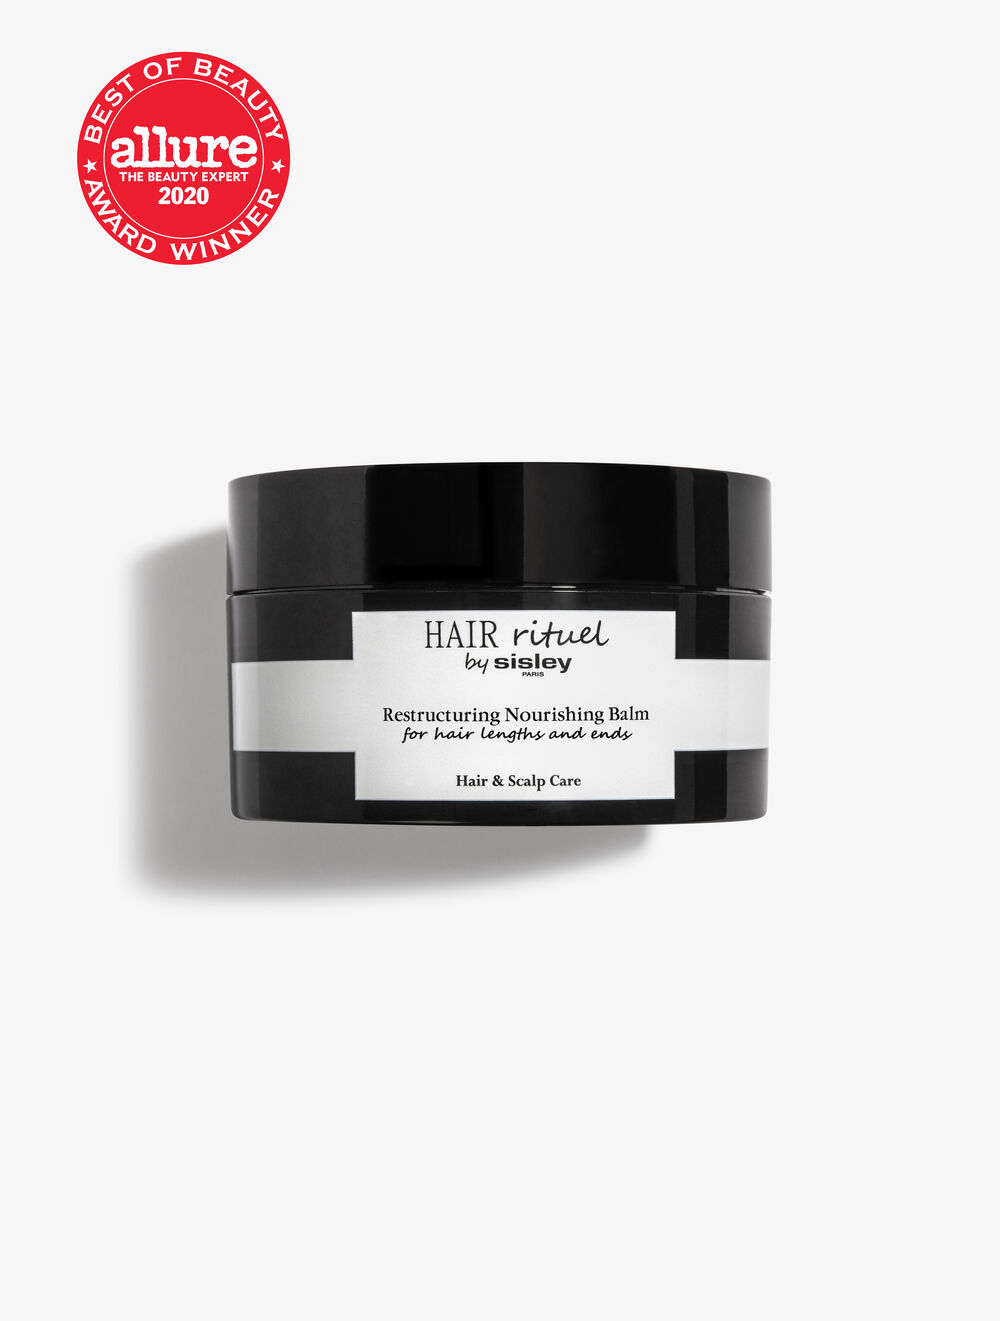 Restructuring Nourishing Balm for hair lengths and ends